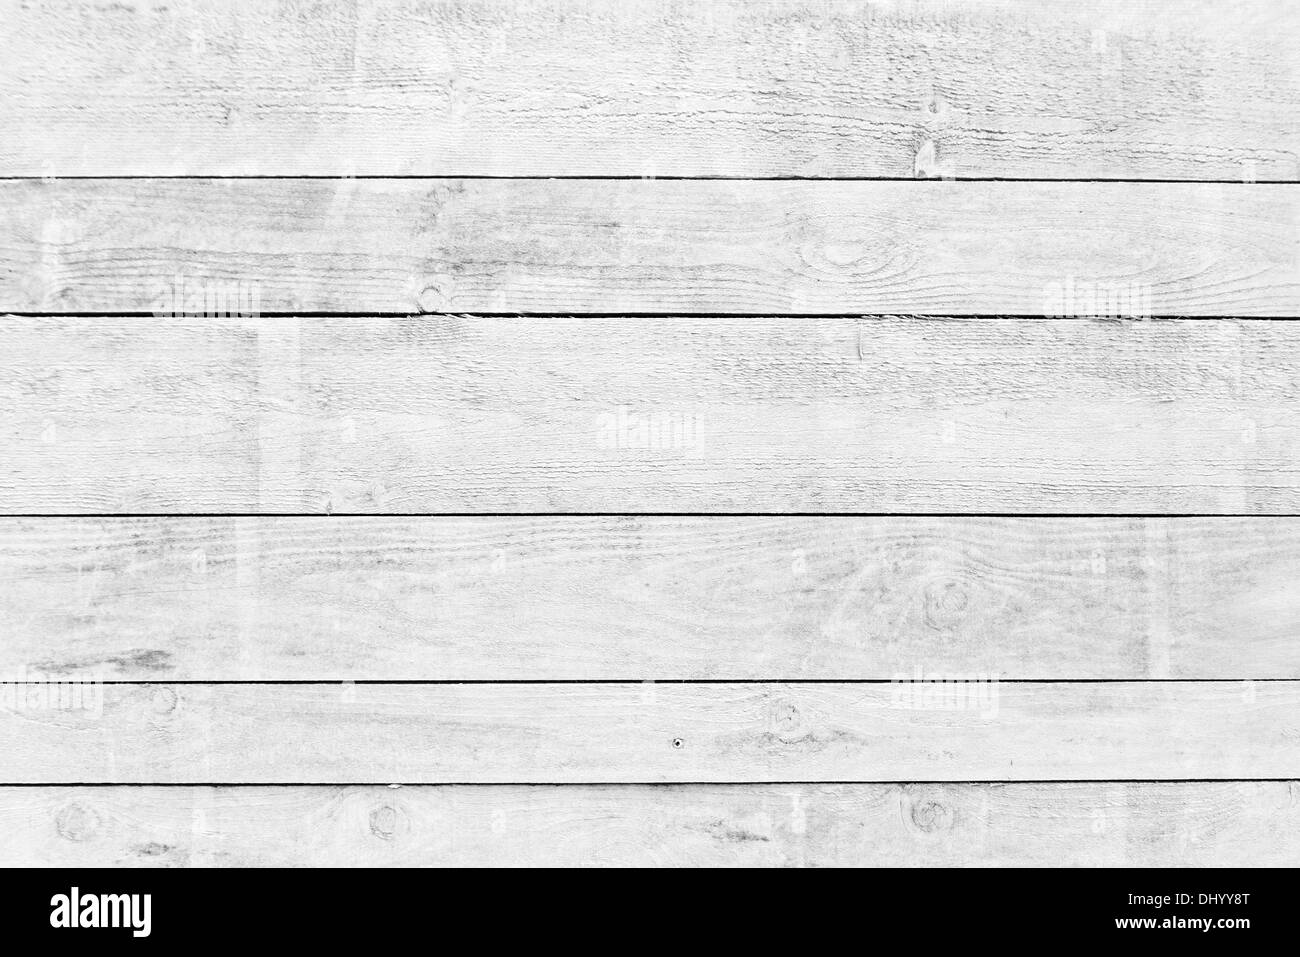 White wood planks texture with natural patterns background - Stock Image